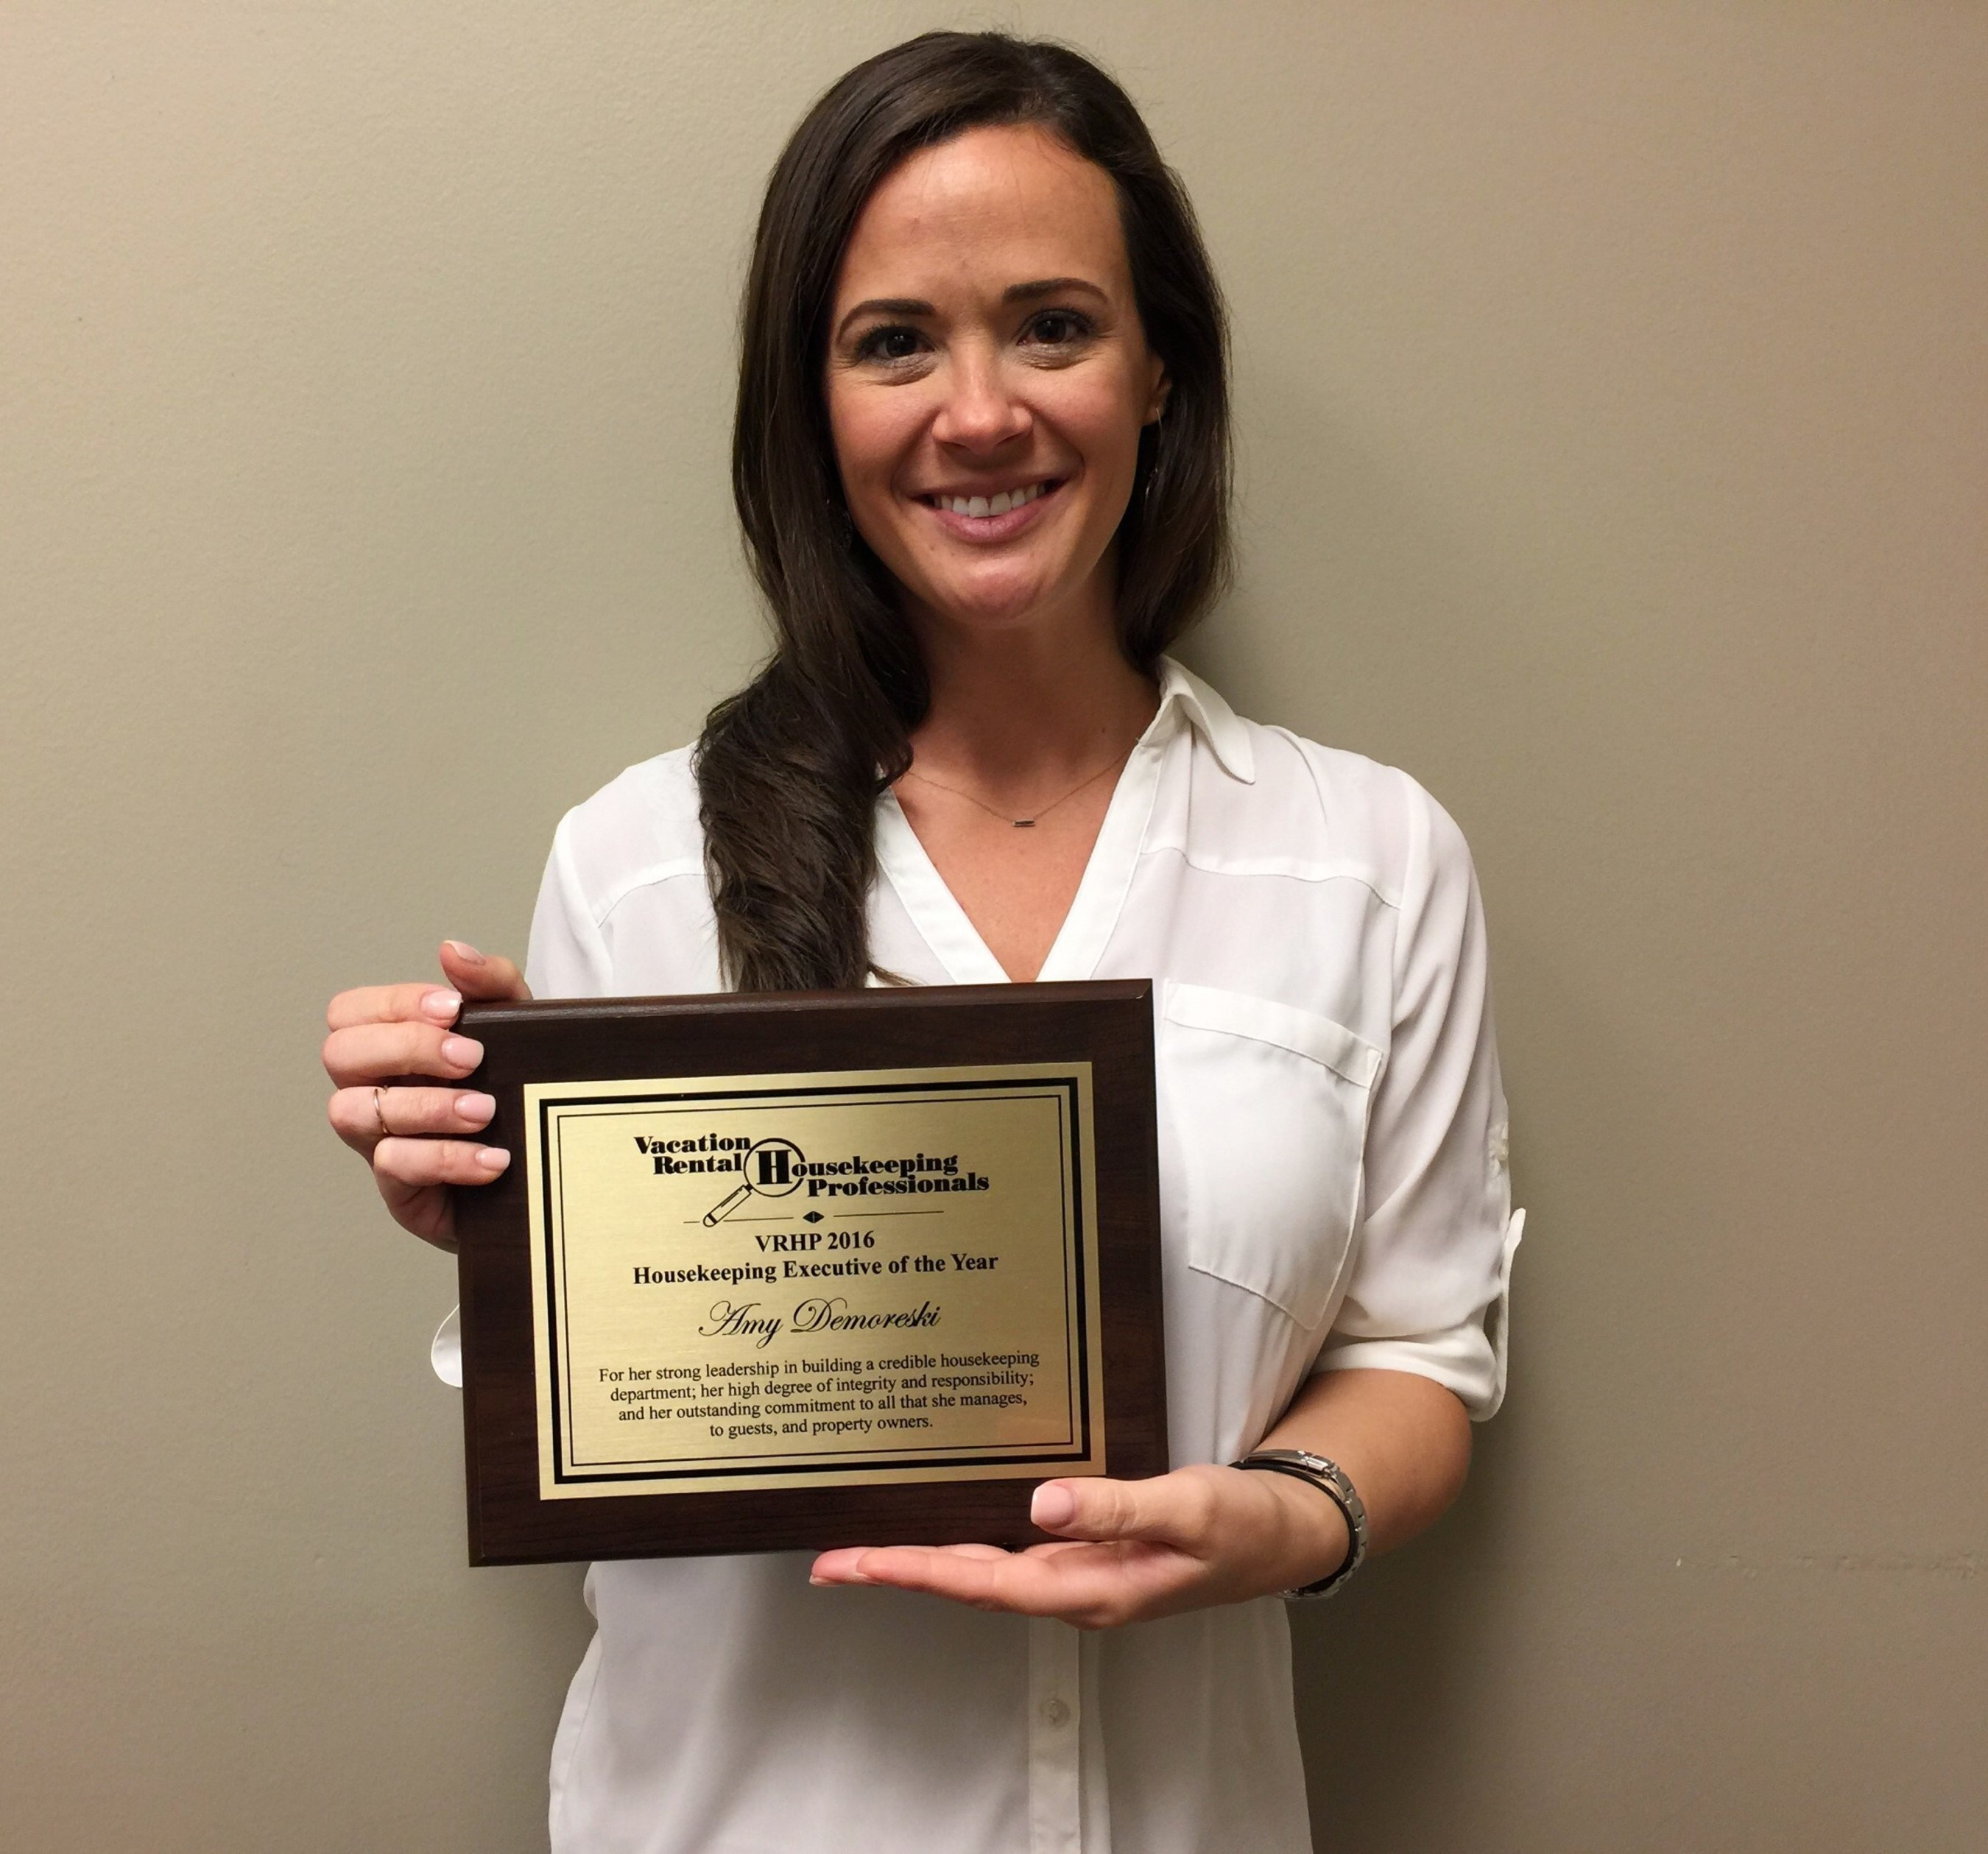 Amy Demoreski, Five Star Properties, Director of Housekeeping holds onto her award for VRHP's 2016 Executive Housekeeper of the Year.